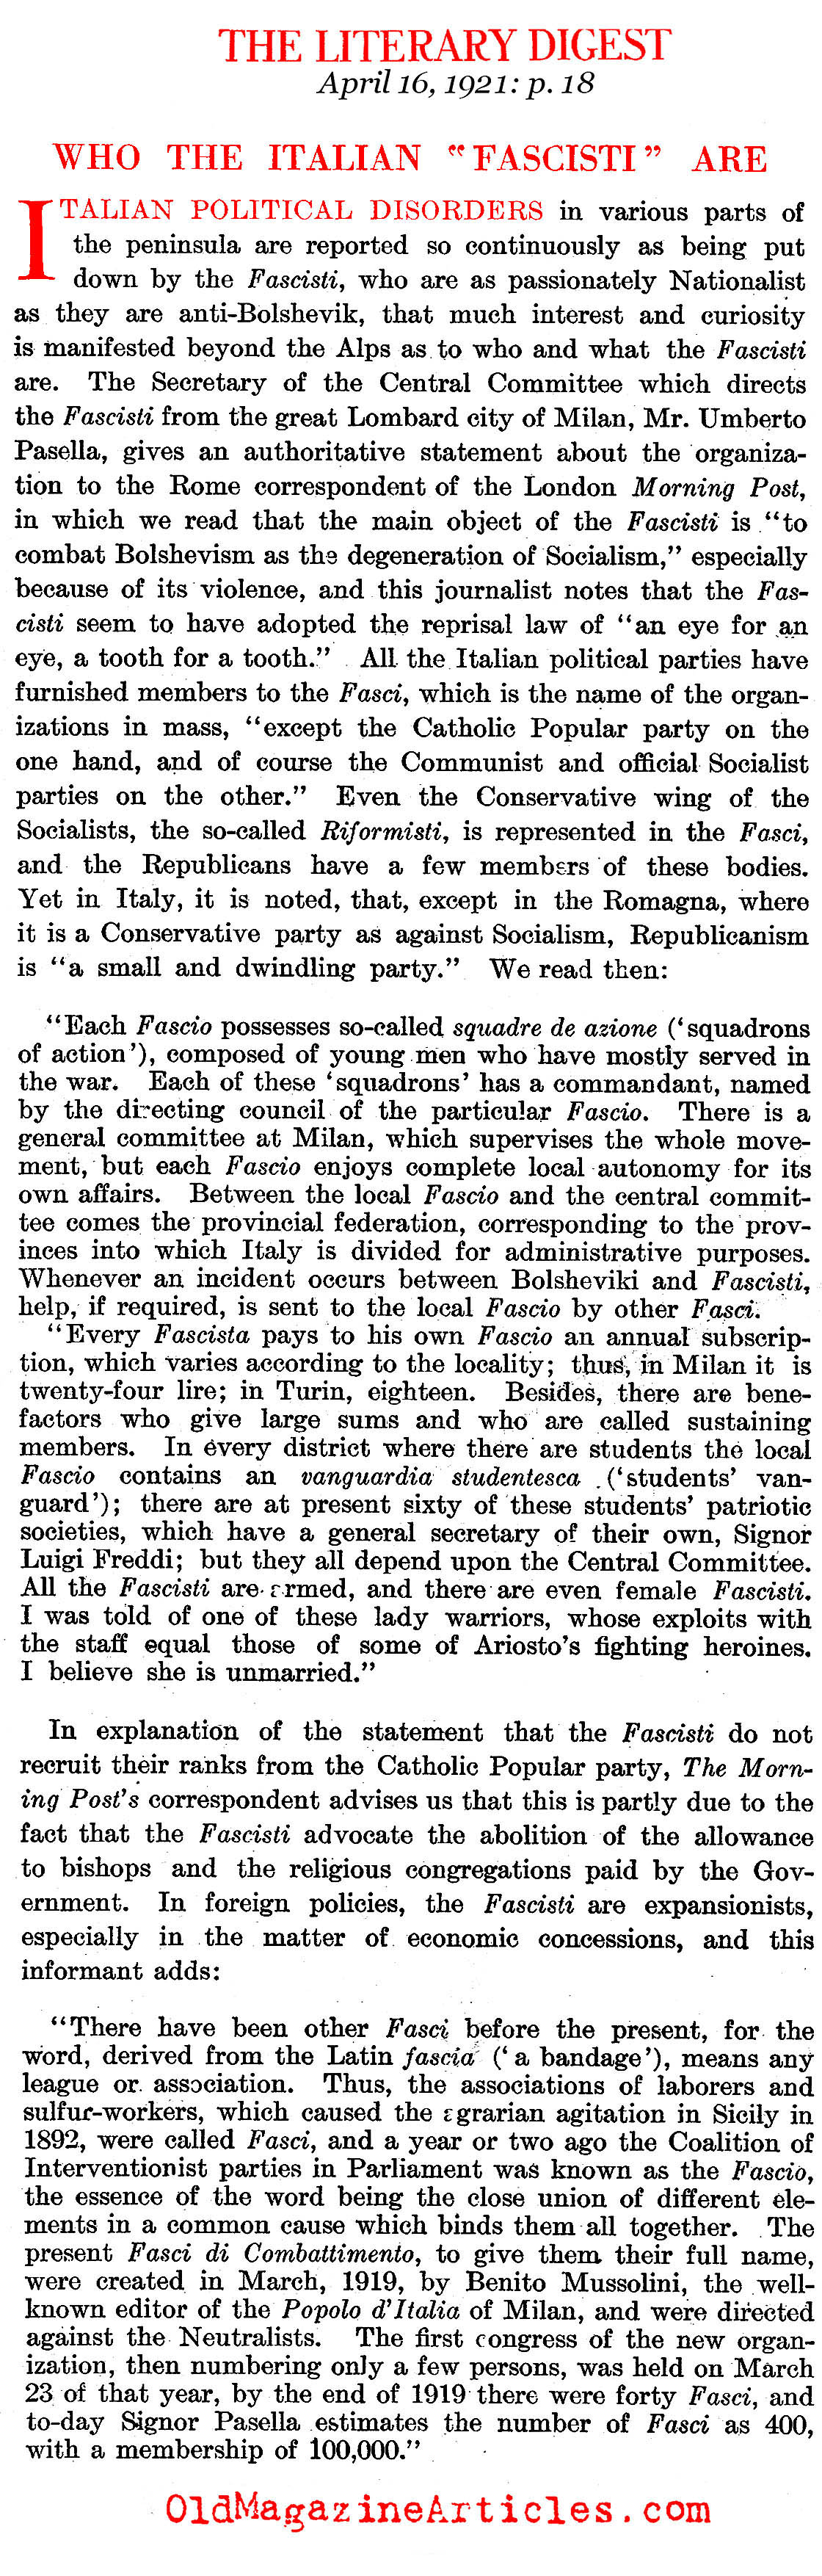 Who Are the Italian Fascists? (The Literary Digest, 1921)